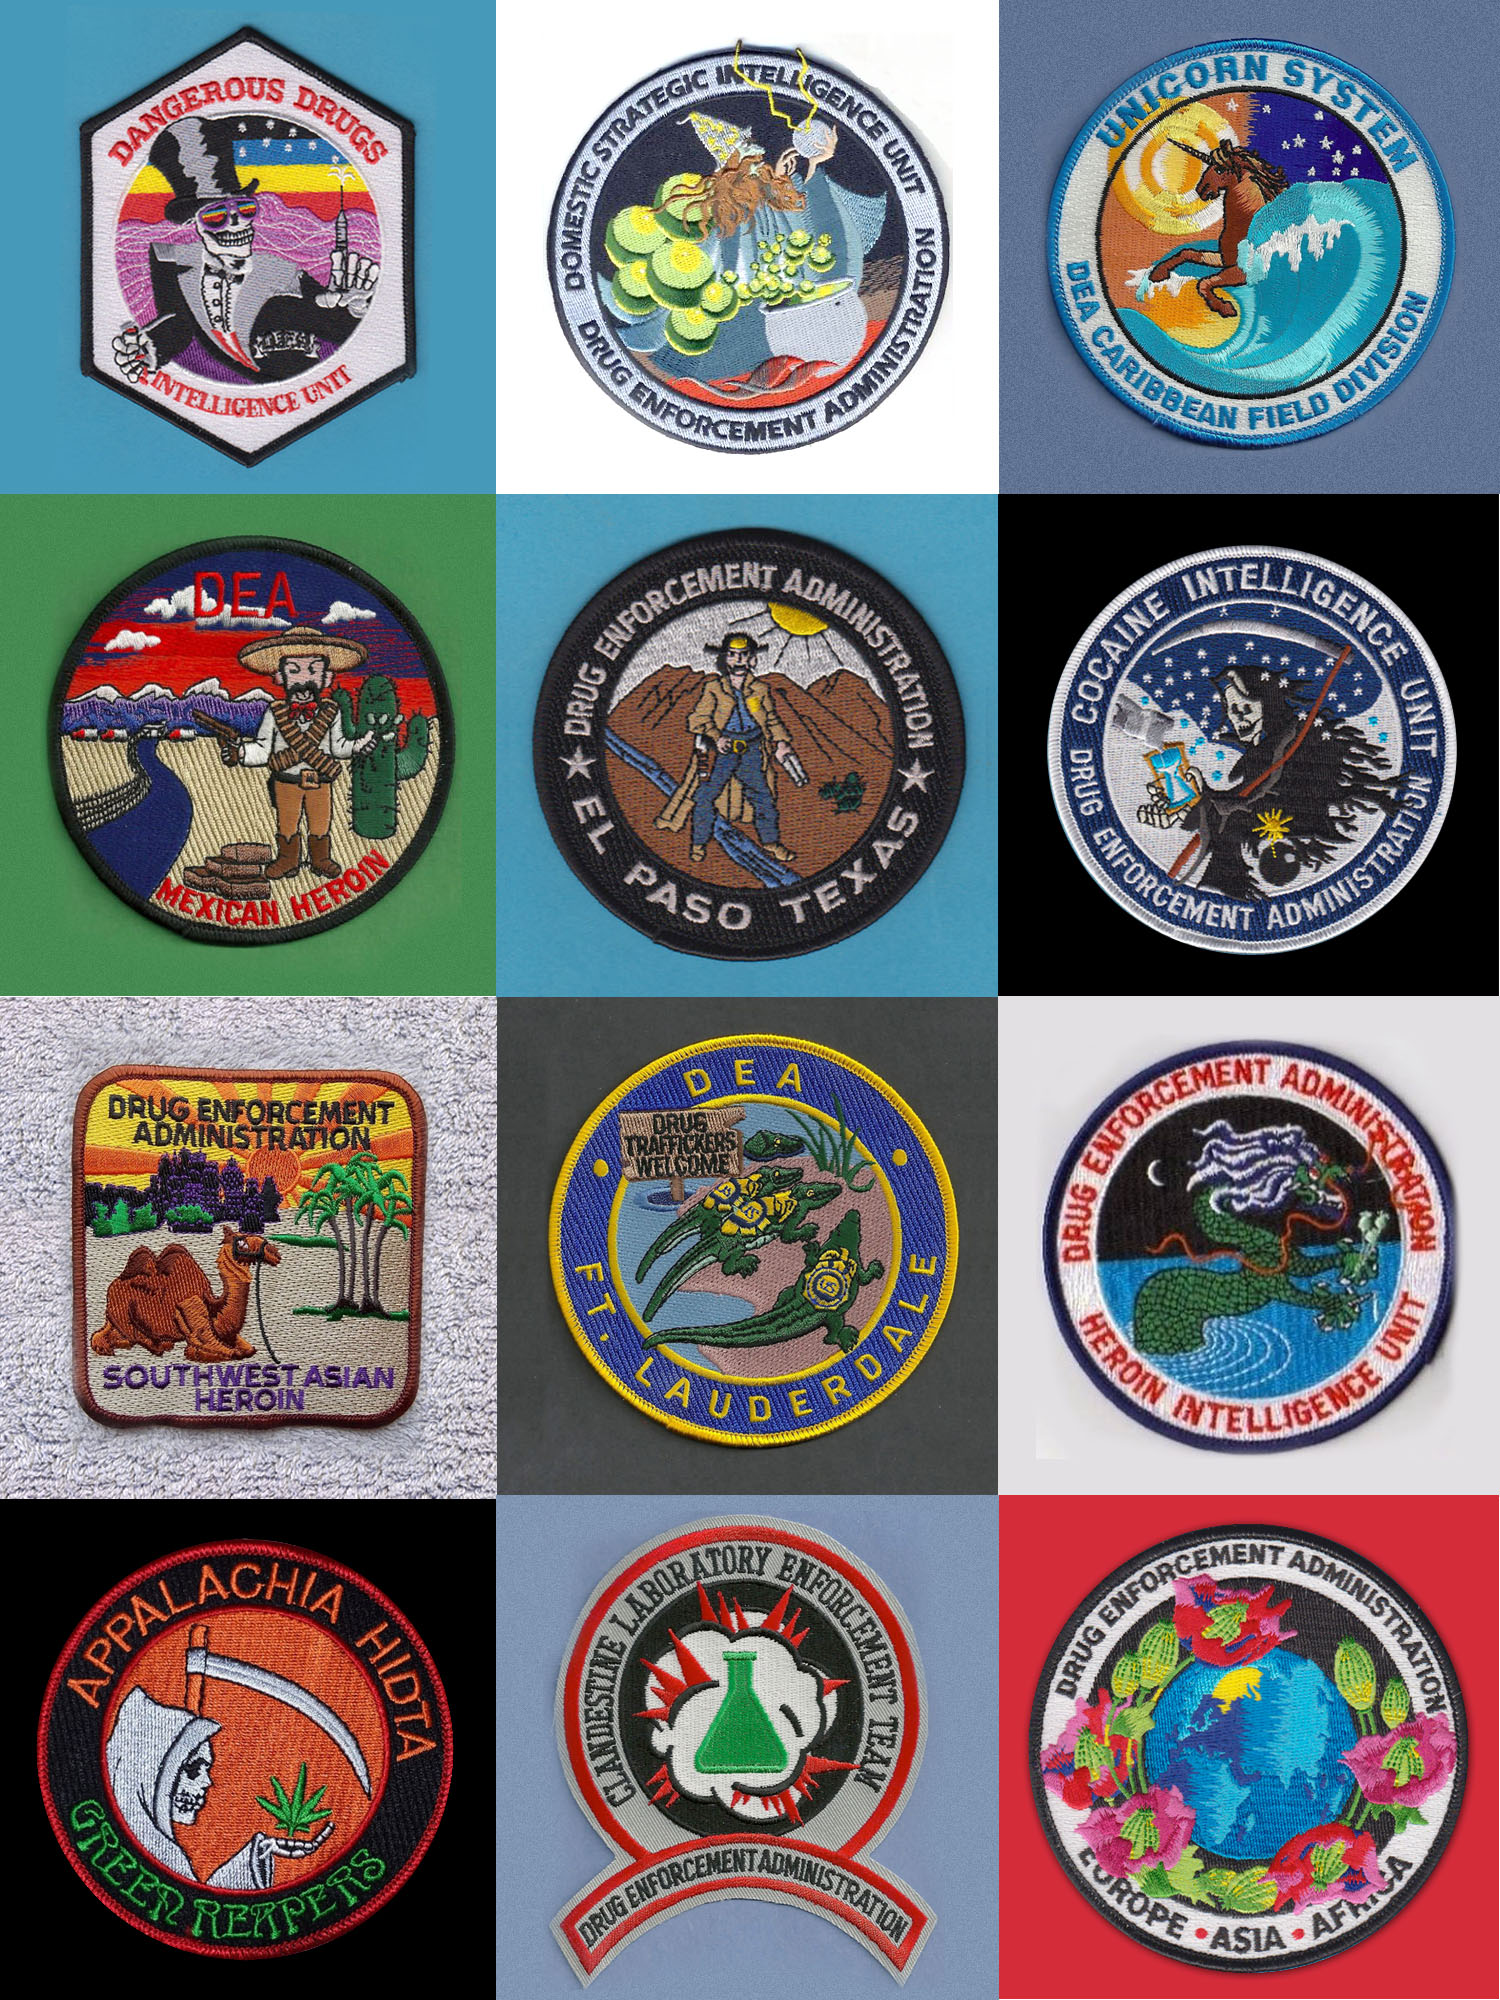 dea patches